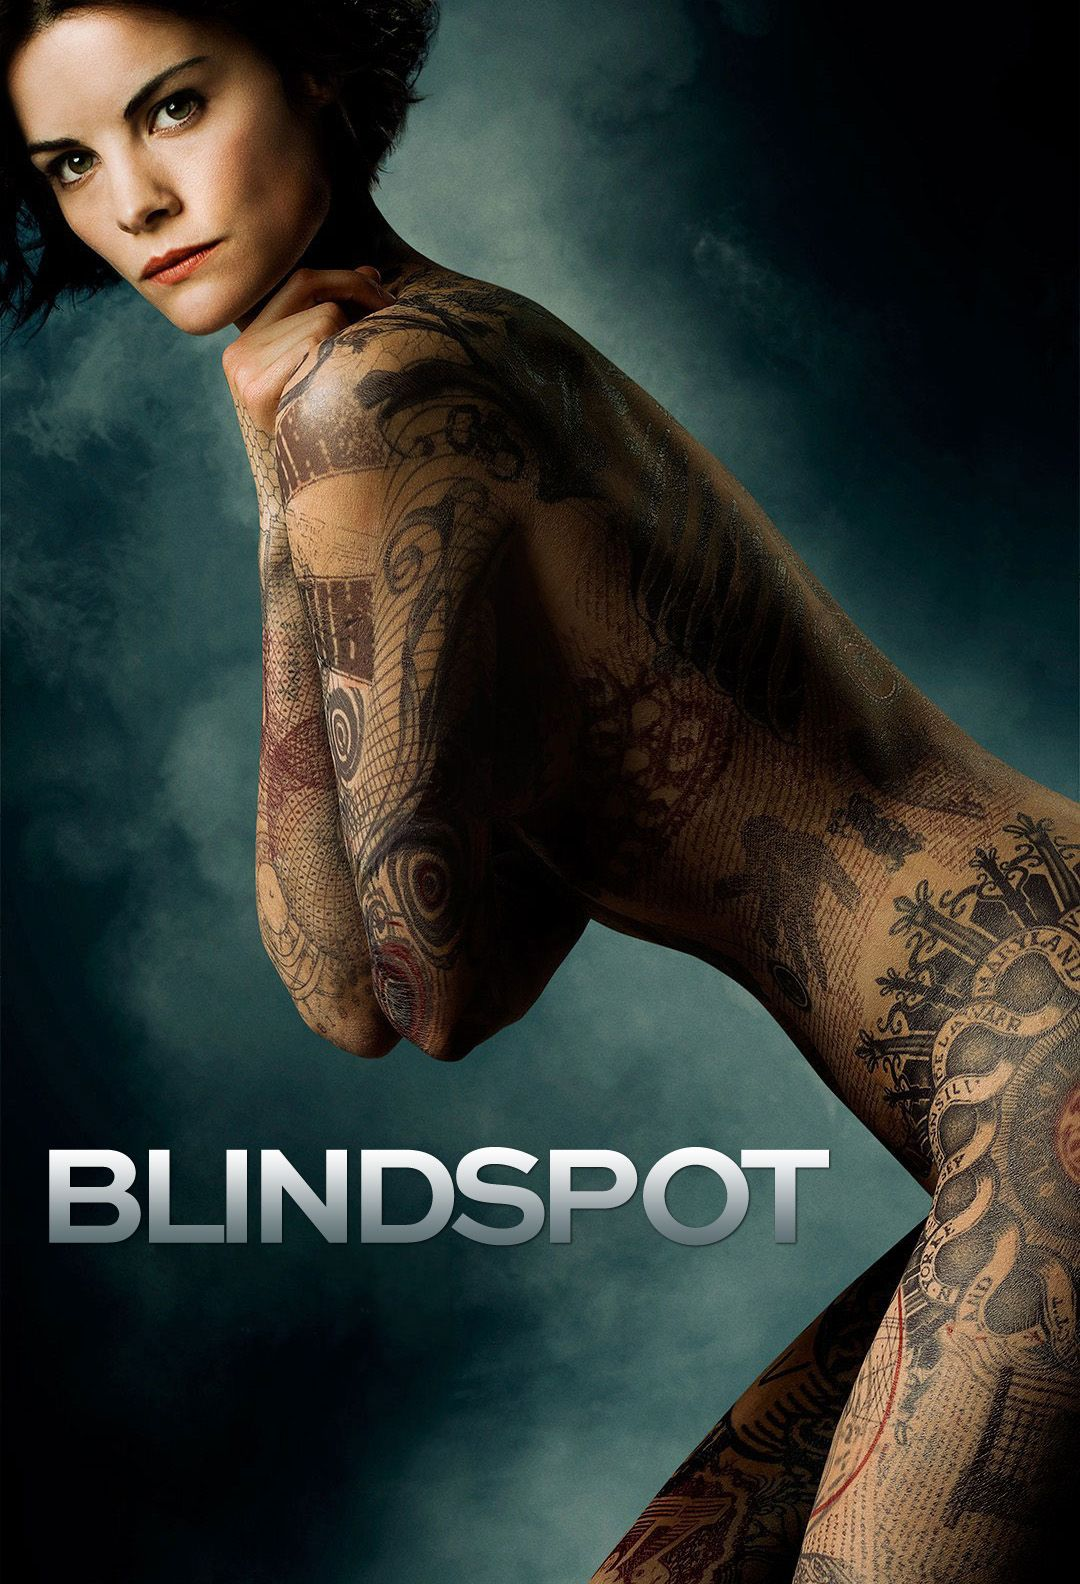 blindspot movies imdb and jaimie alexander blindspot